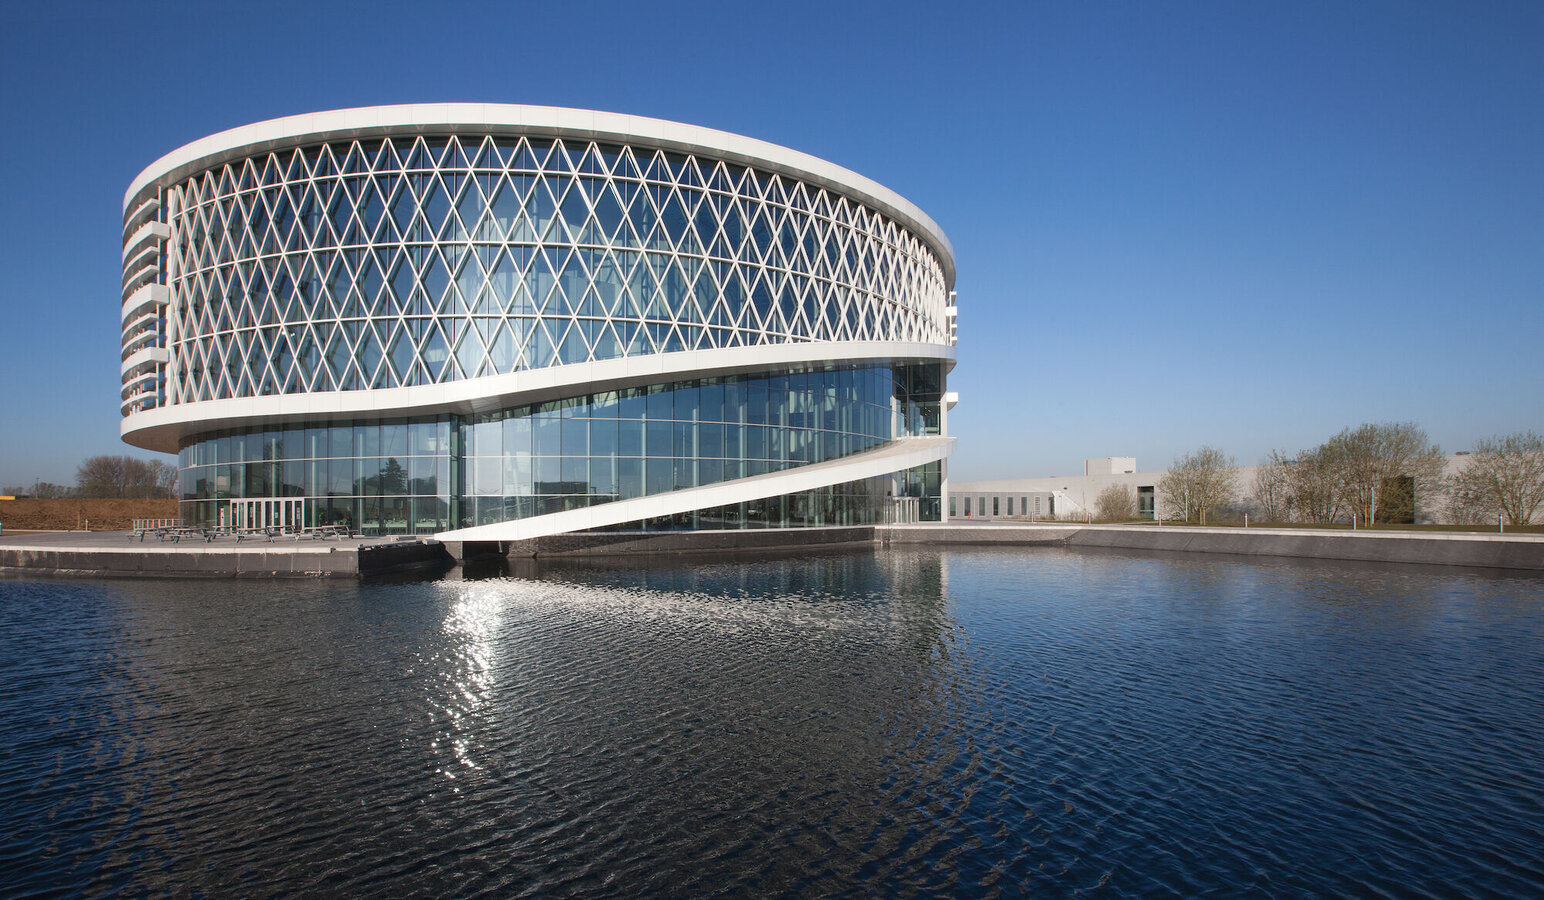 CW 50-RA/FRV Curtain Walls and CW 50 Curtain Walls - Office building Barco One Campus located in Kortrijk, Belgium